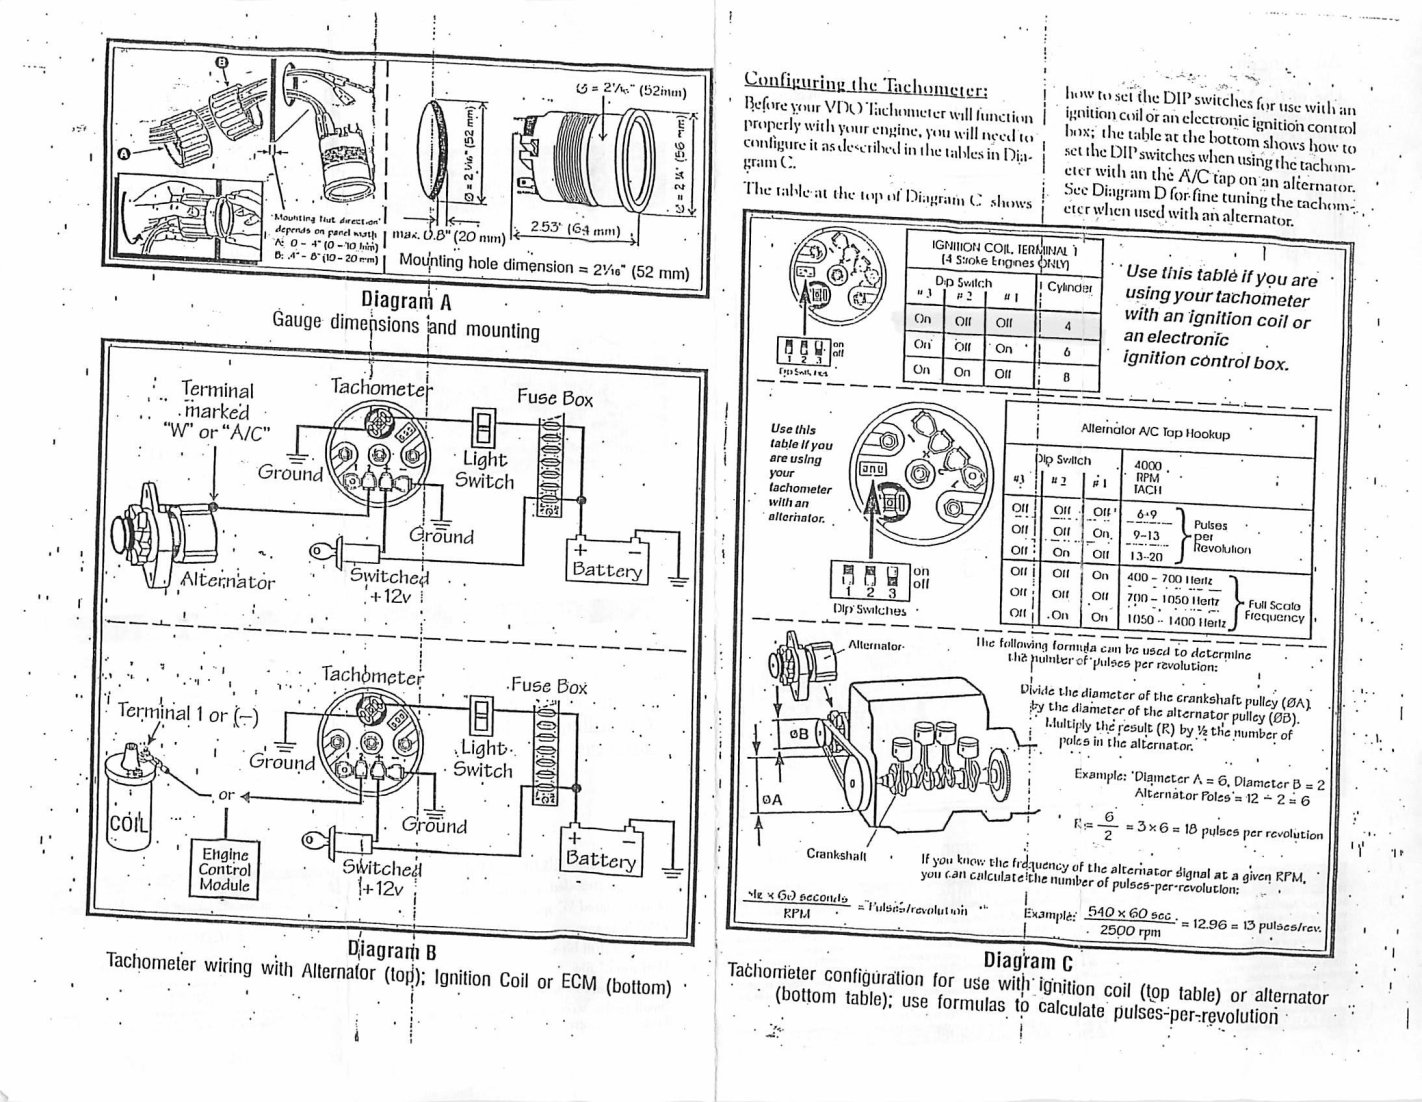 Vdo Tachometer Wiring Diagram Chevy Books Of Mercedes 400 1985 300d Alternator Free